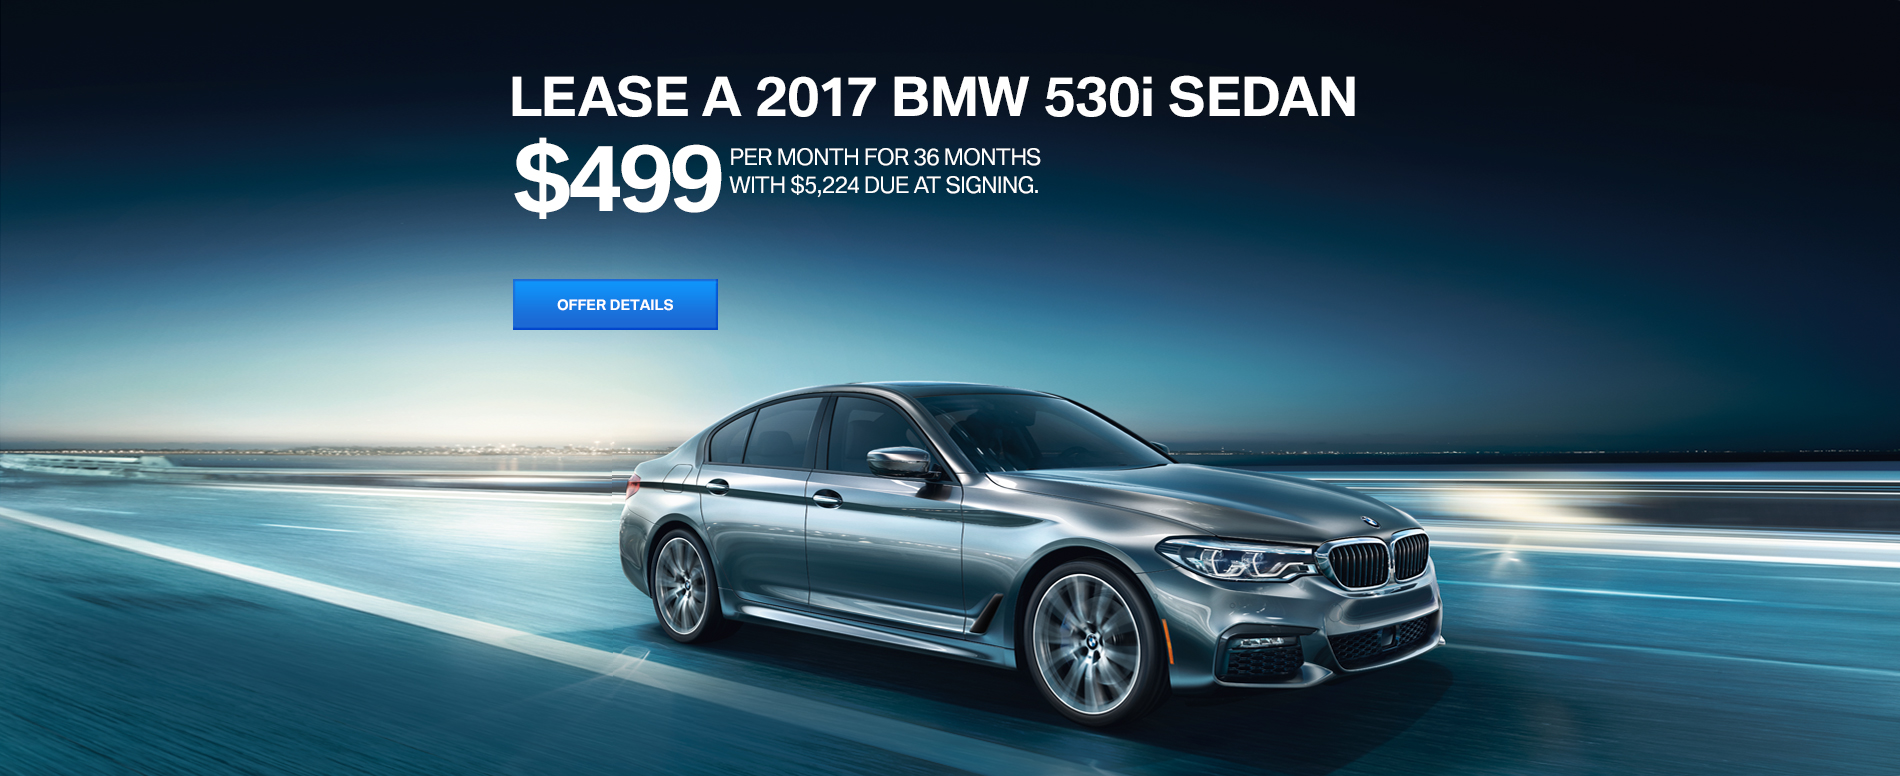 LEASE A 2017 530i SEDAN FOR $499 /MO FOR 36 MONTHS